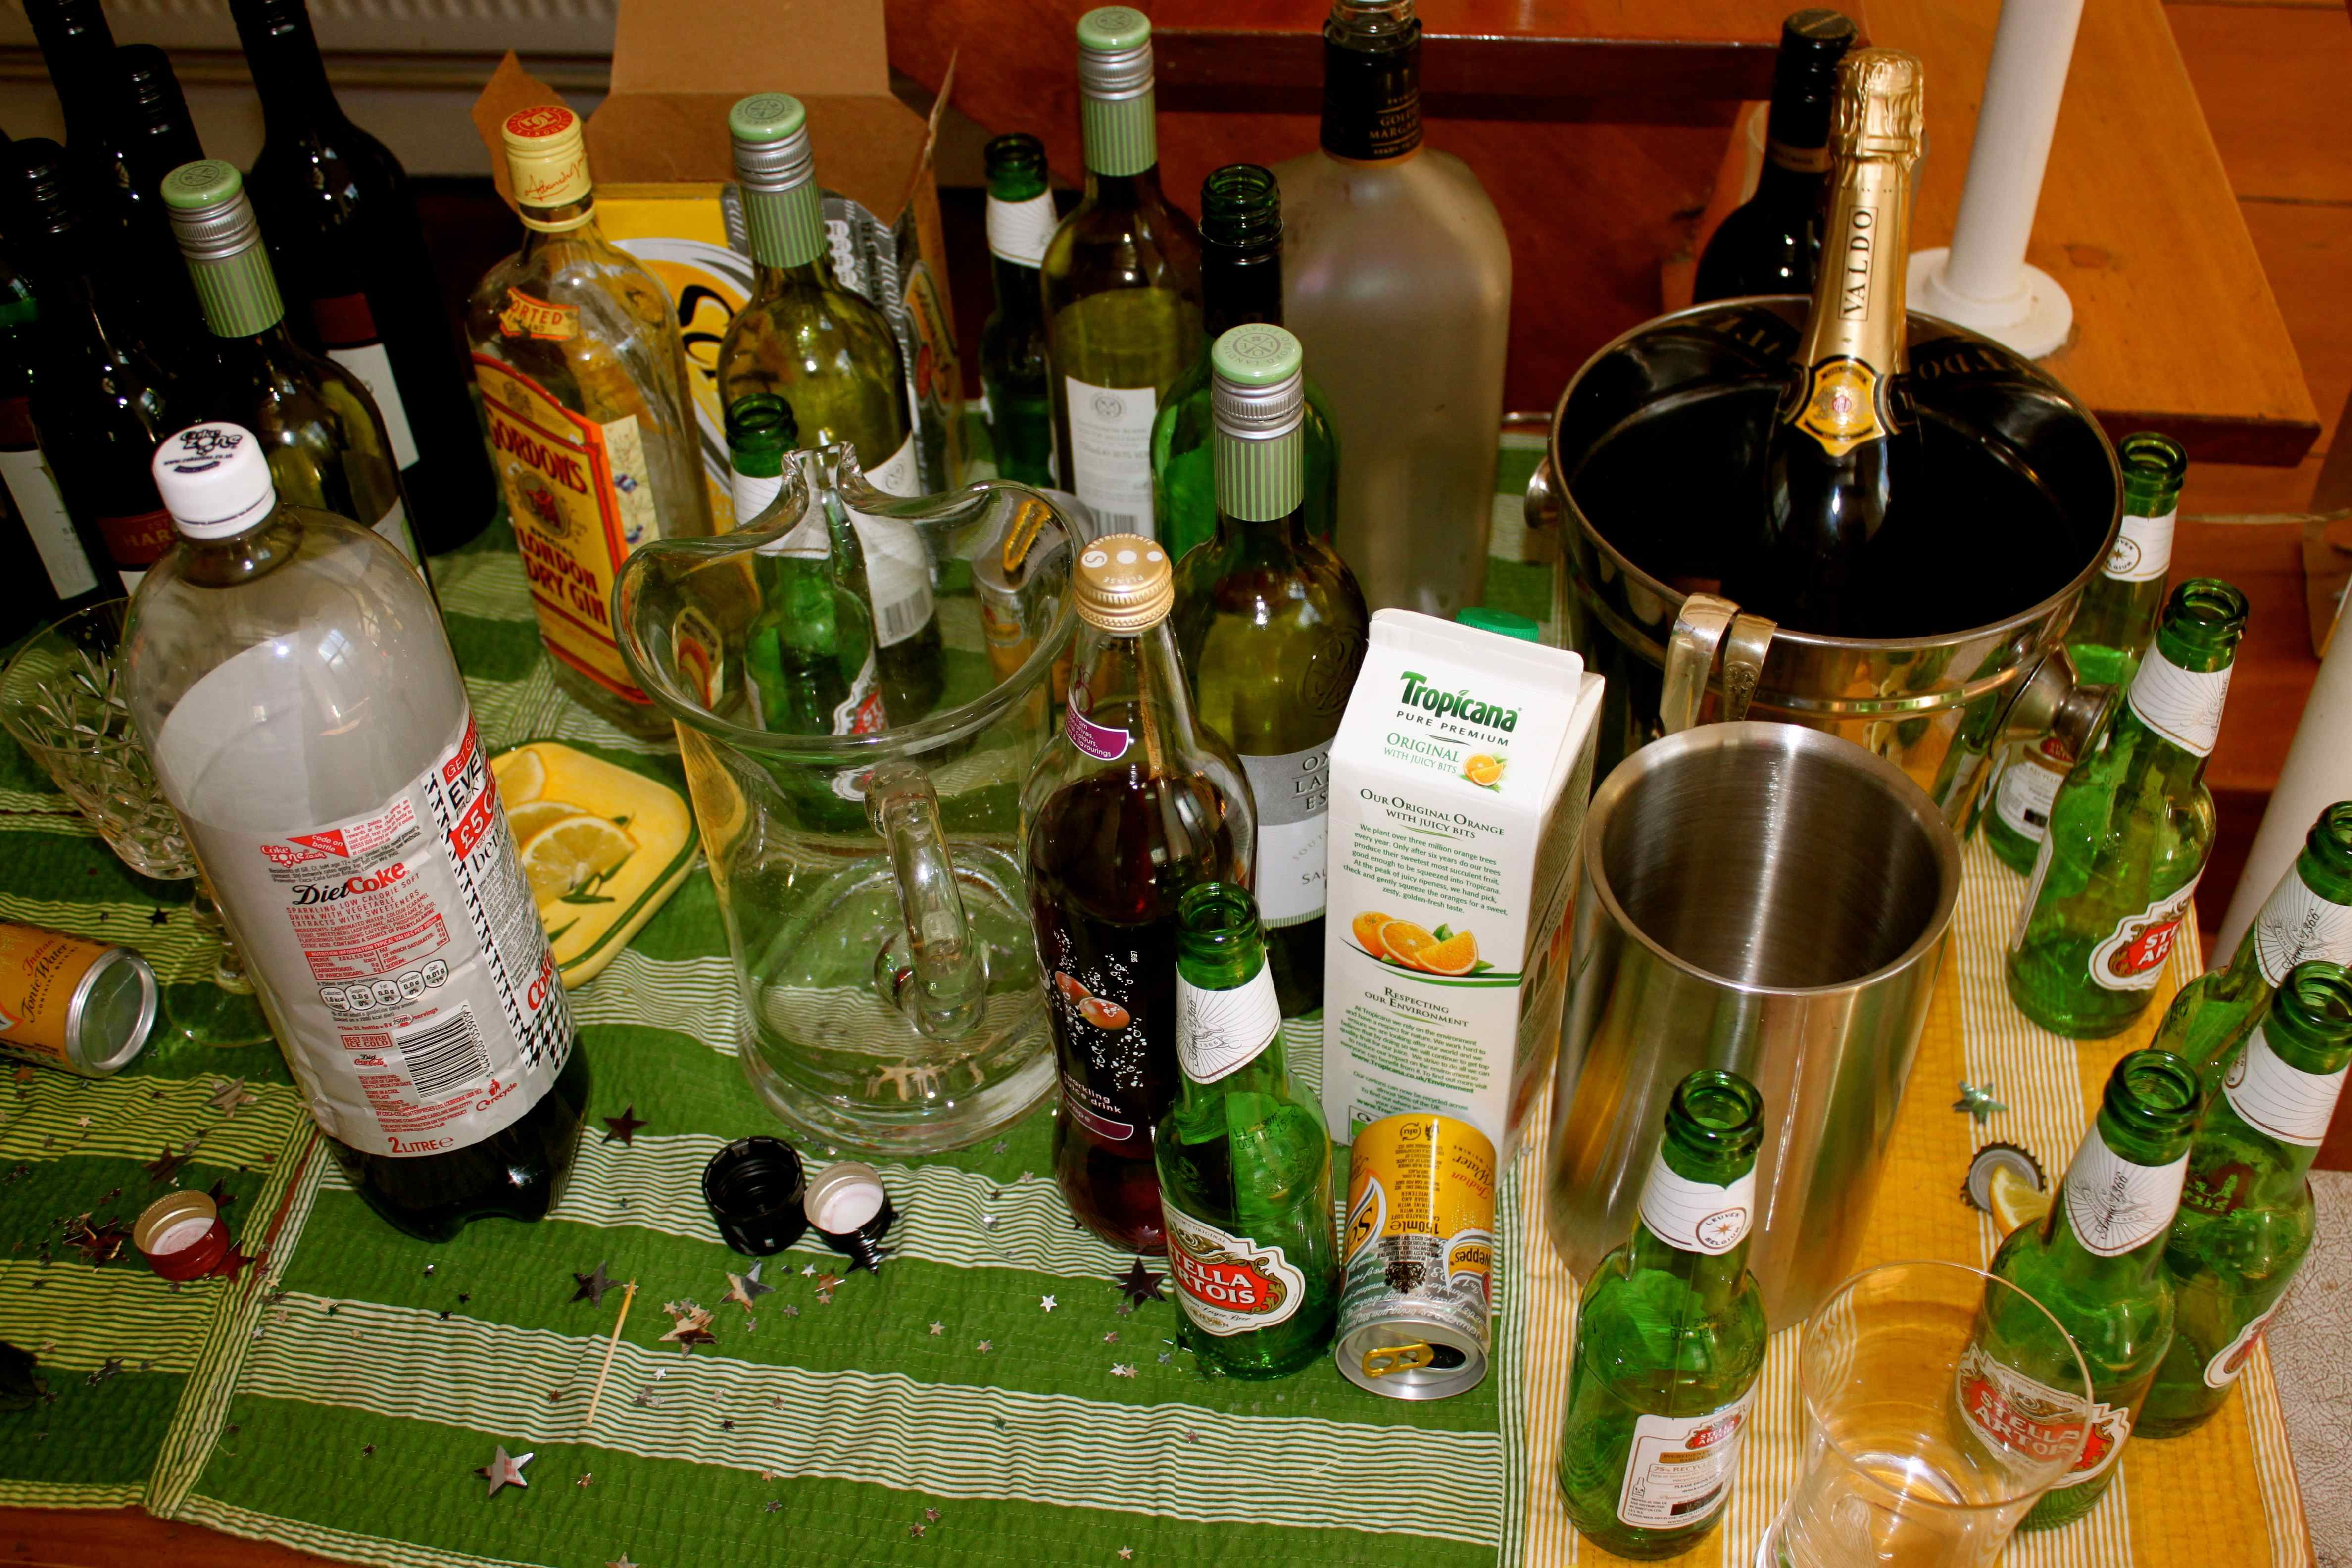 Morning After Party Alcohol Bottles Big Party Bottle